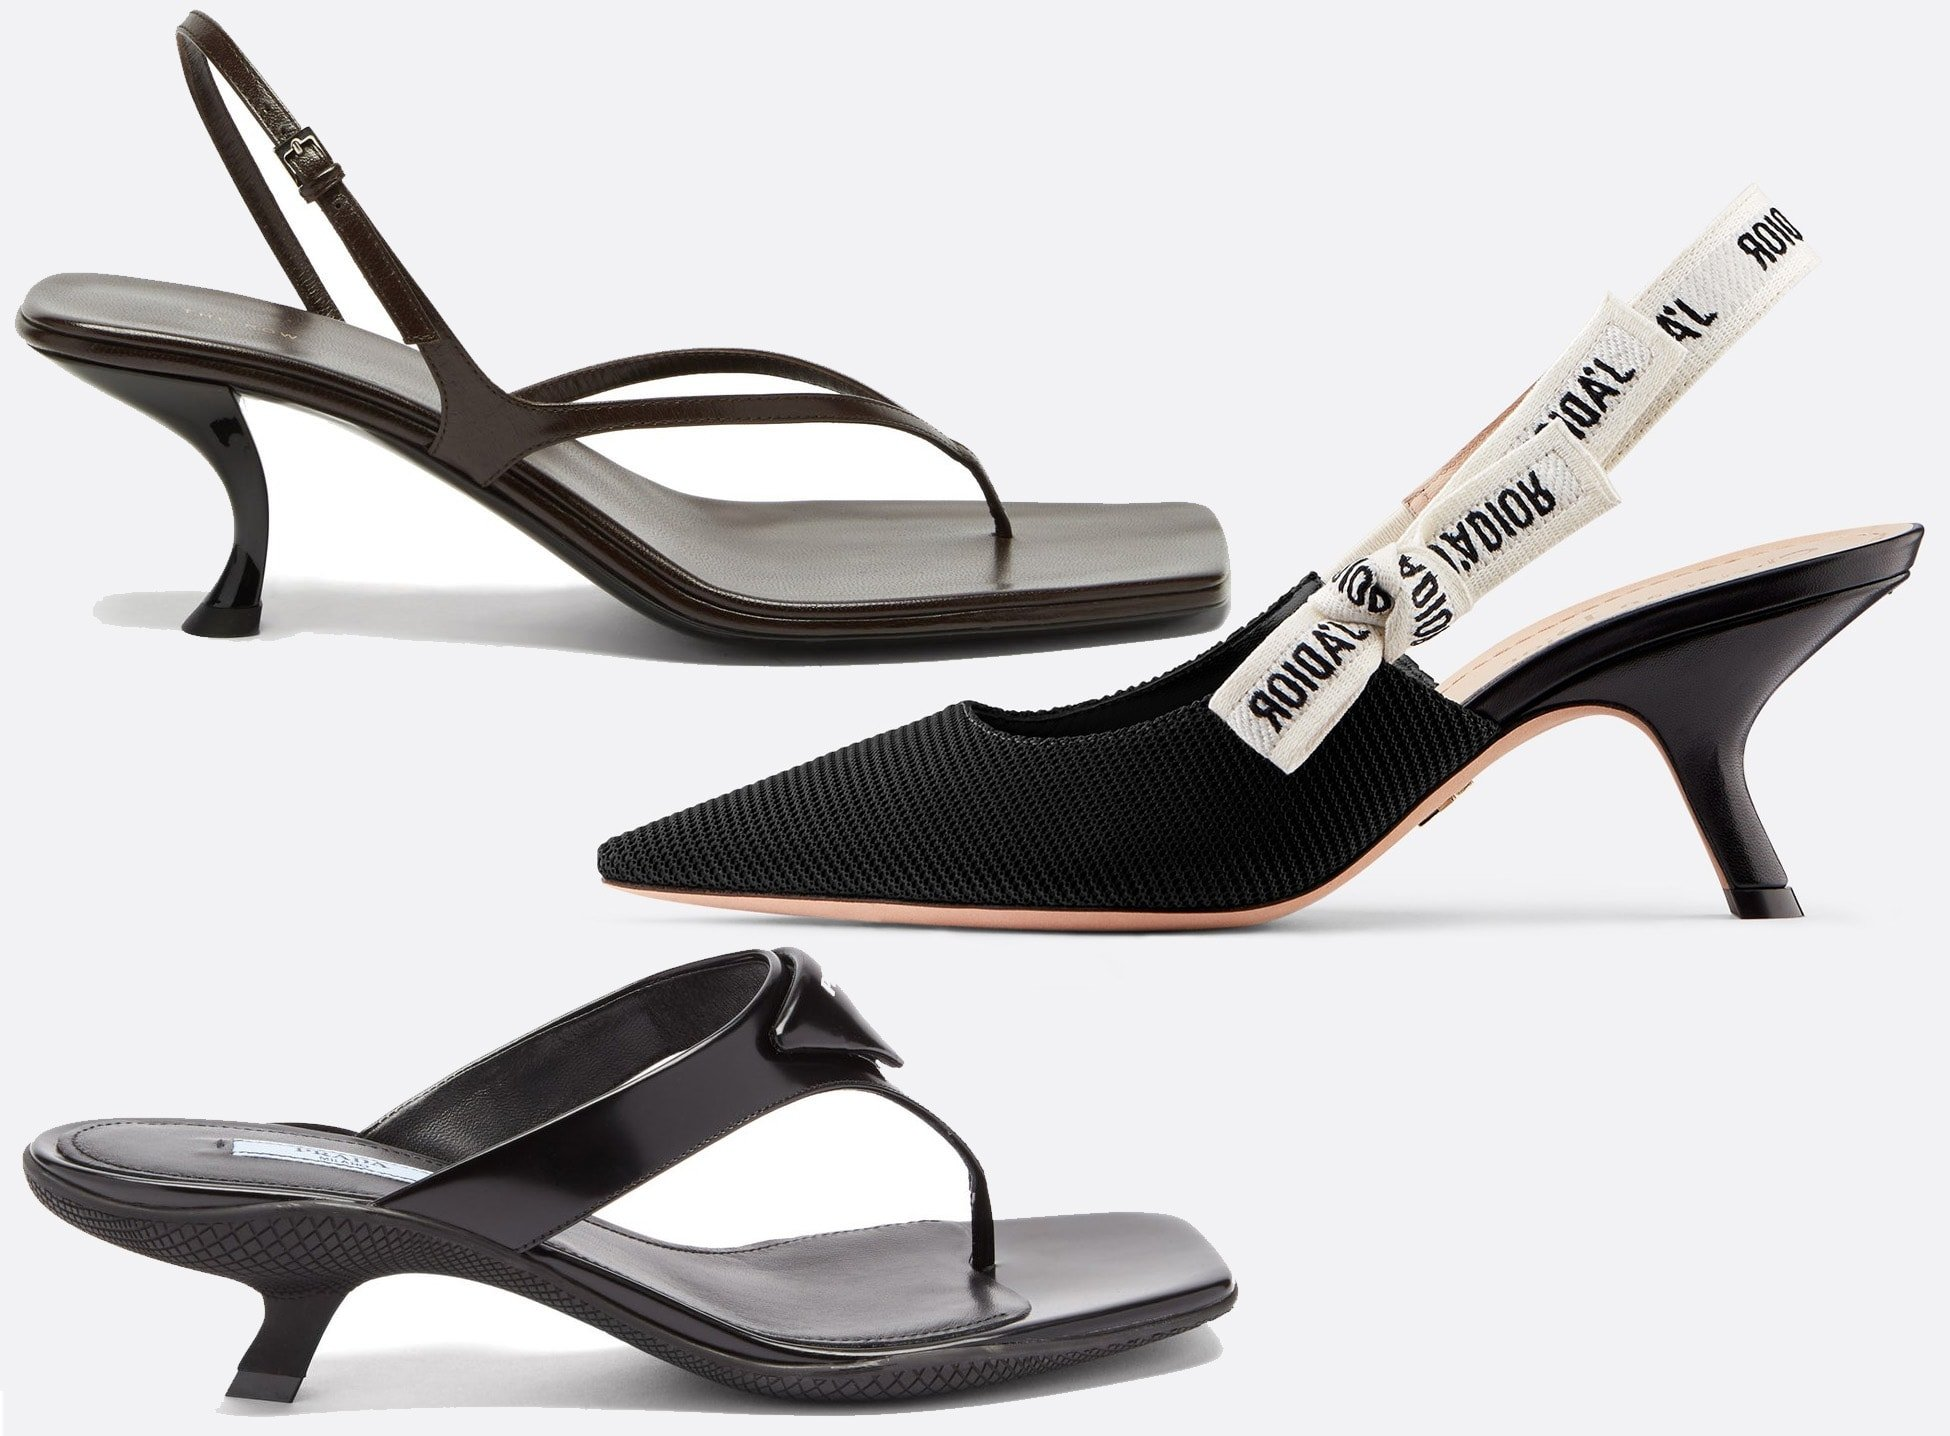 As the name suggests, comma-heeled shoes have heels that are shaped like a comma